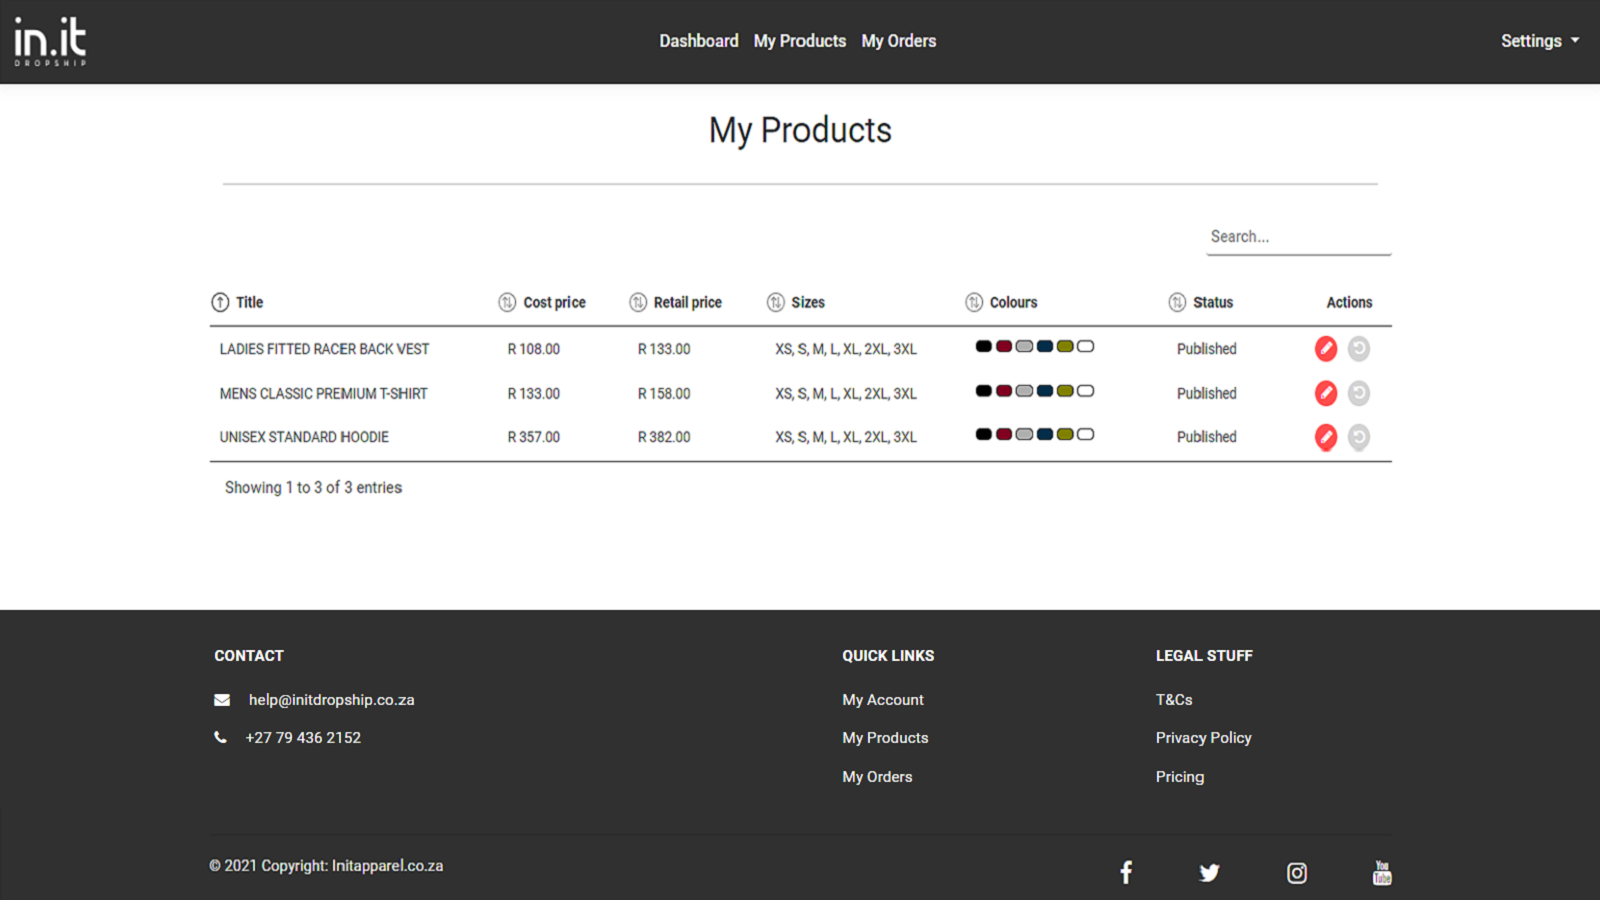 My products page